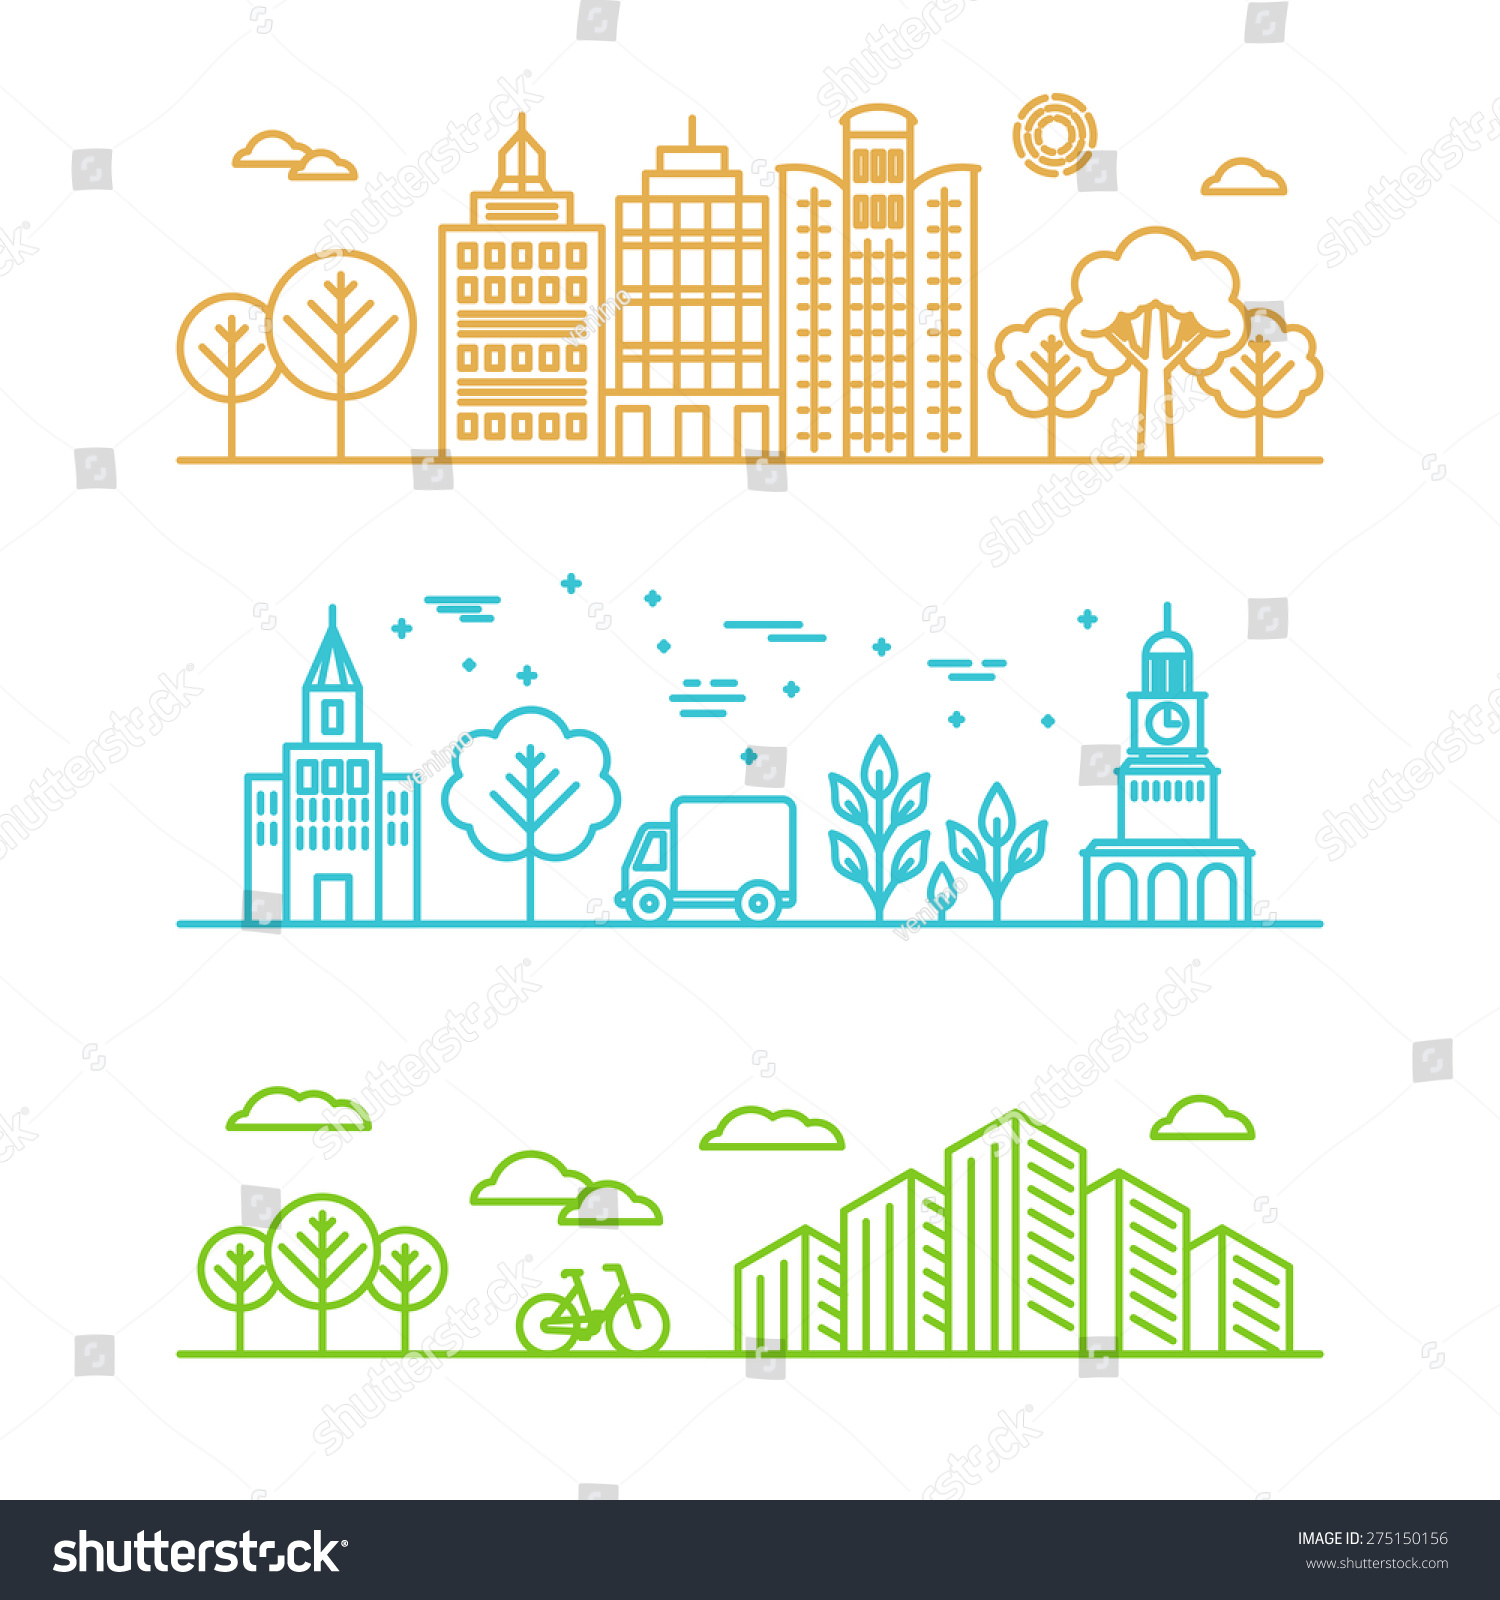 vector city illustration linear style buildings のベクター画像素材